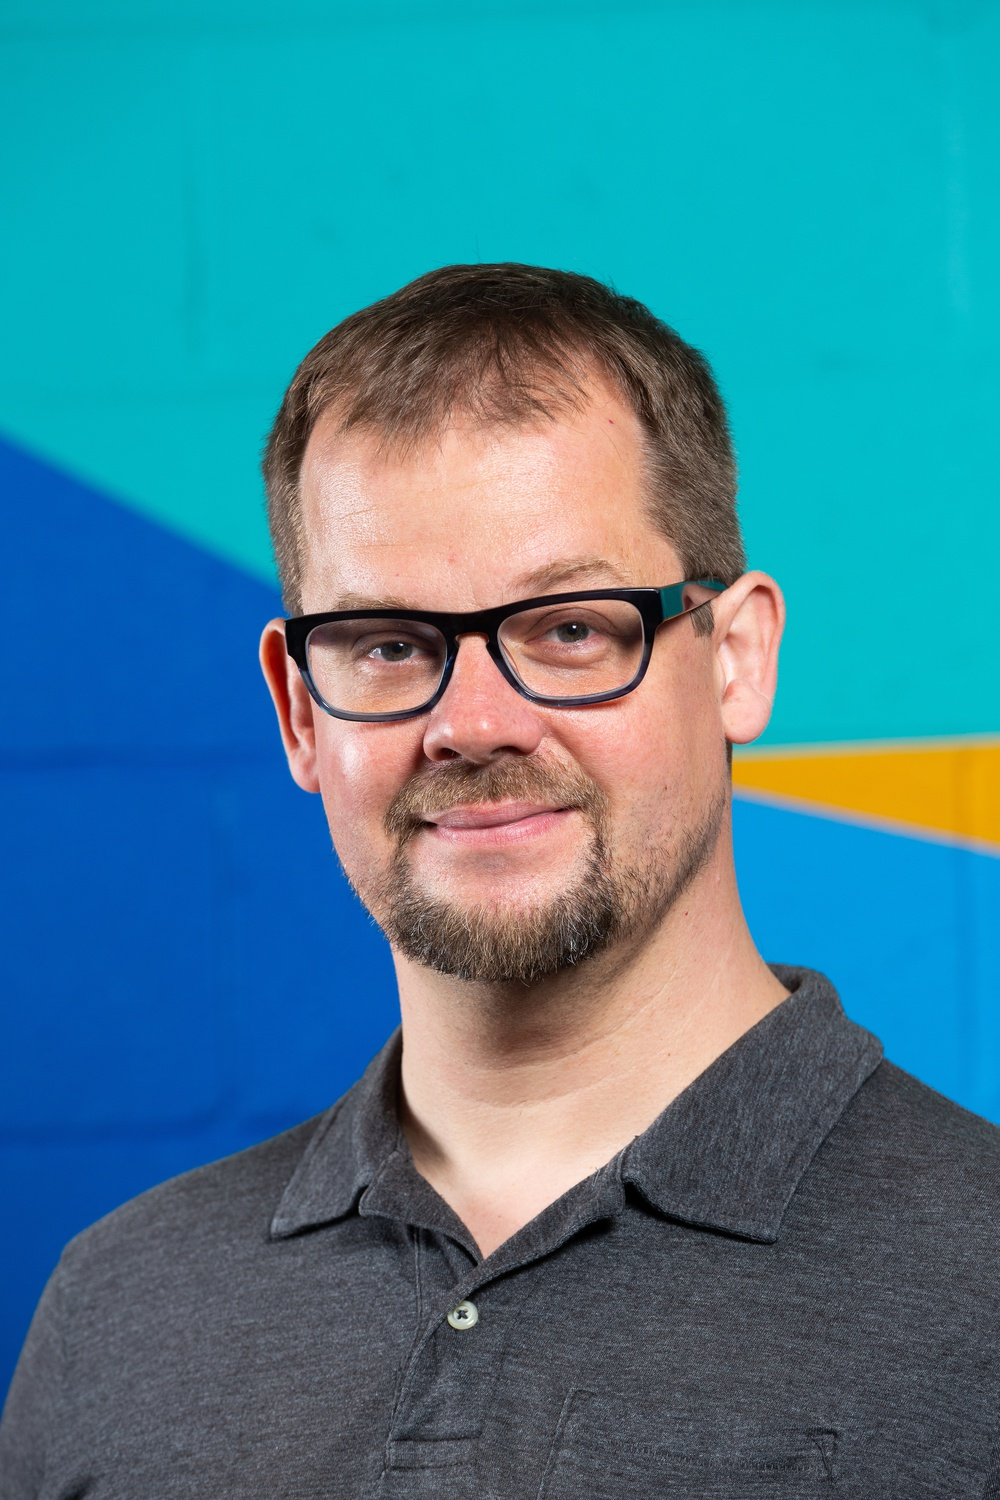 Dr. Sam Anthony co-founded Perceptive Automata in 2014. He is currently the Chief Technology Officer, leading a team of more than 20 engineers and scientists.